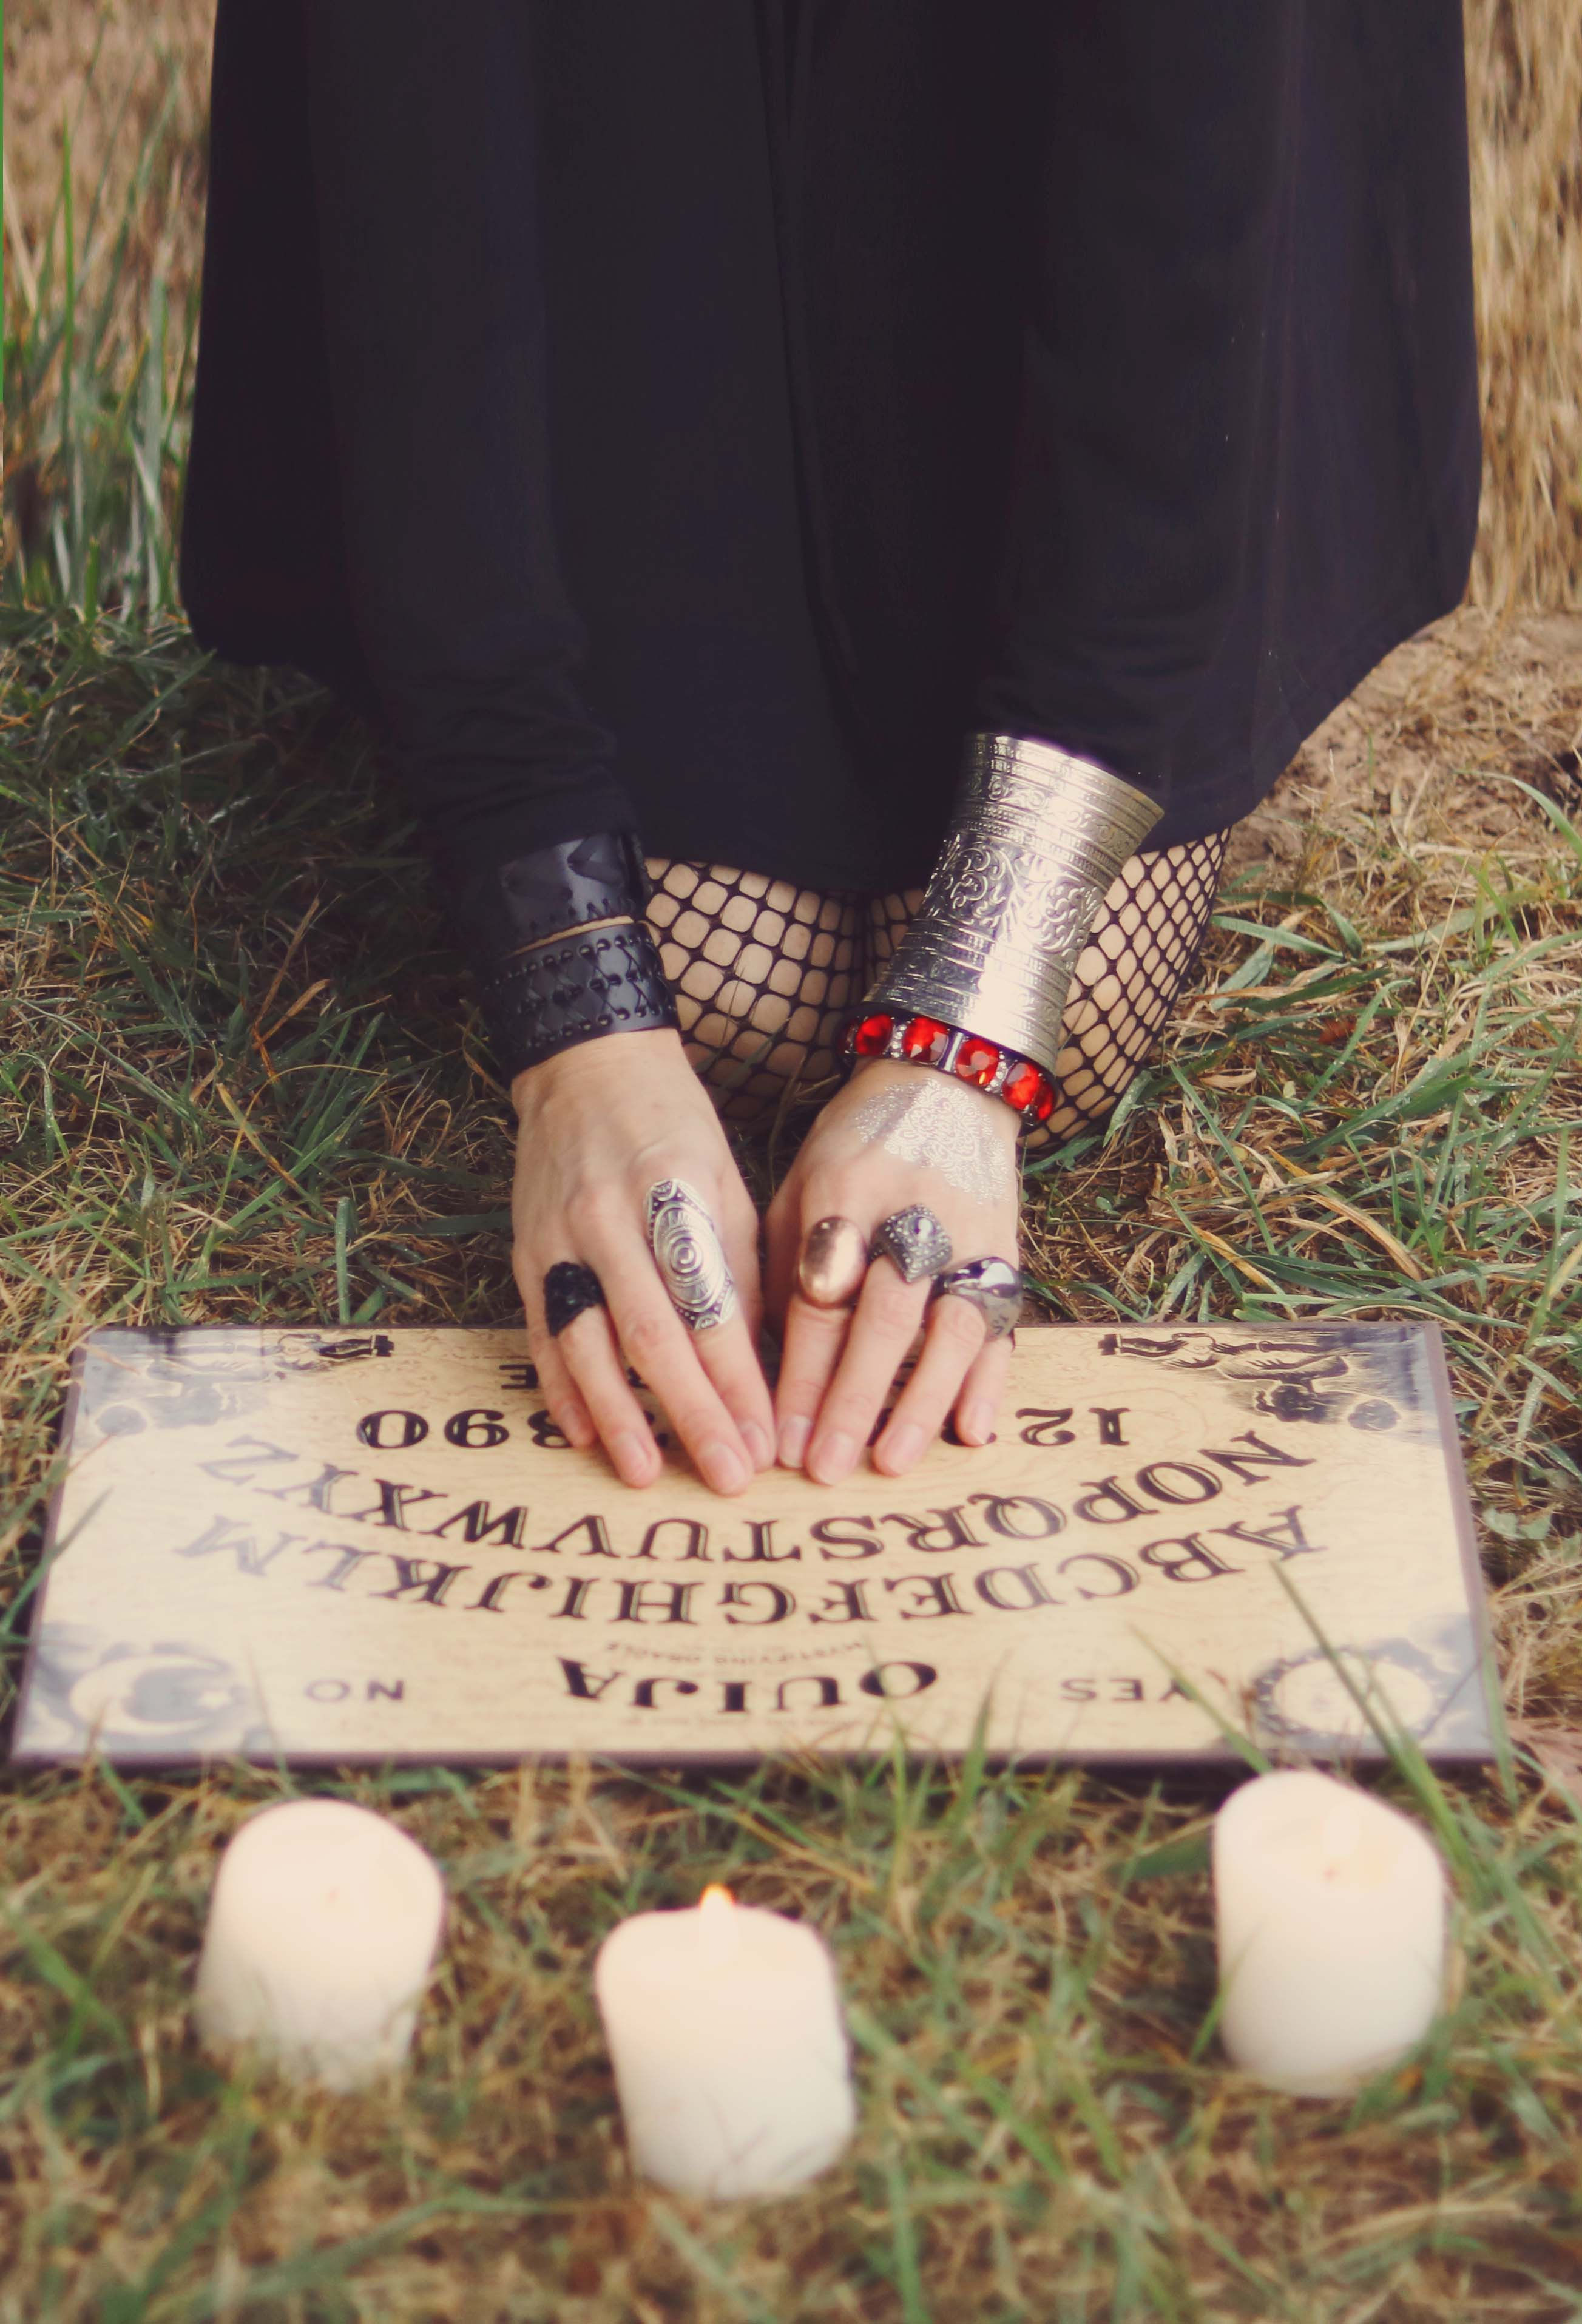 Weird, unexplained and mindblowing facts about witchcraft, the occult and the paranormal.